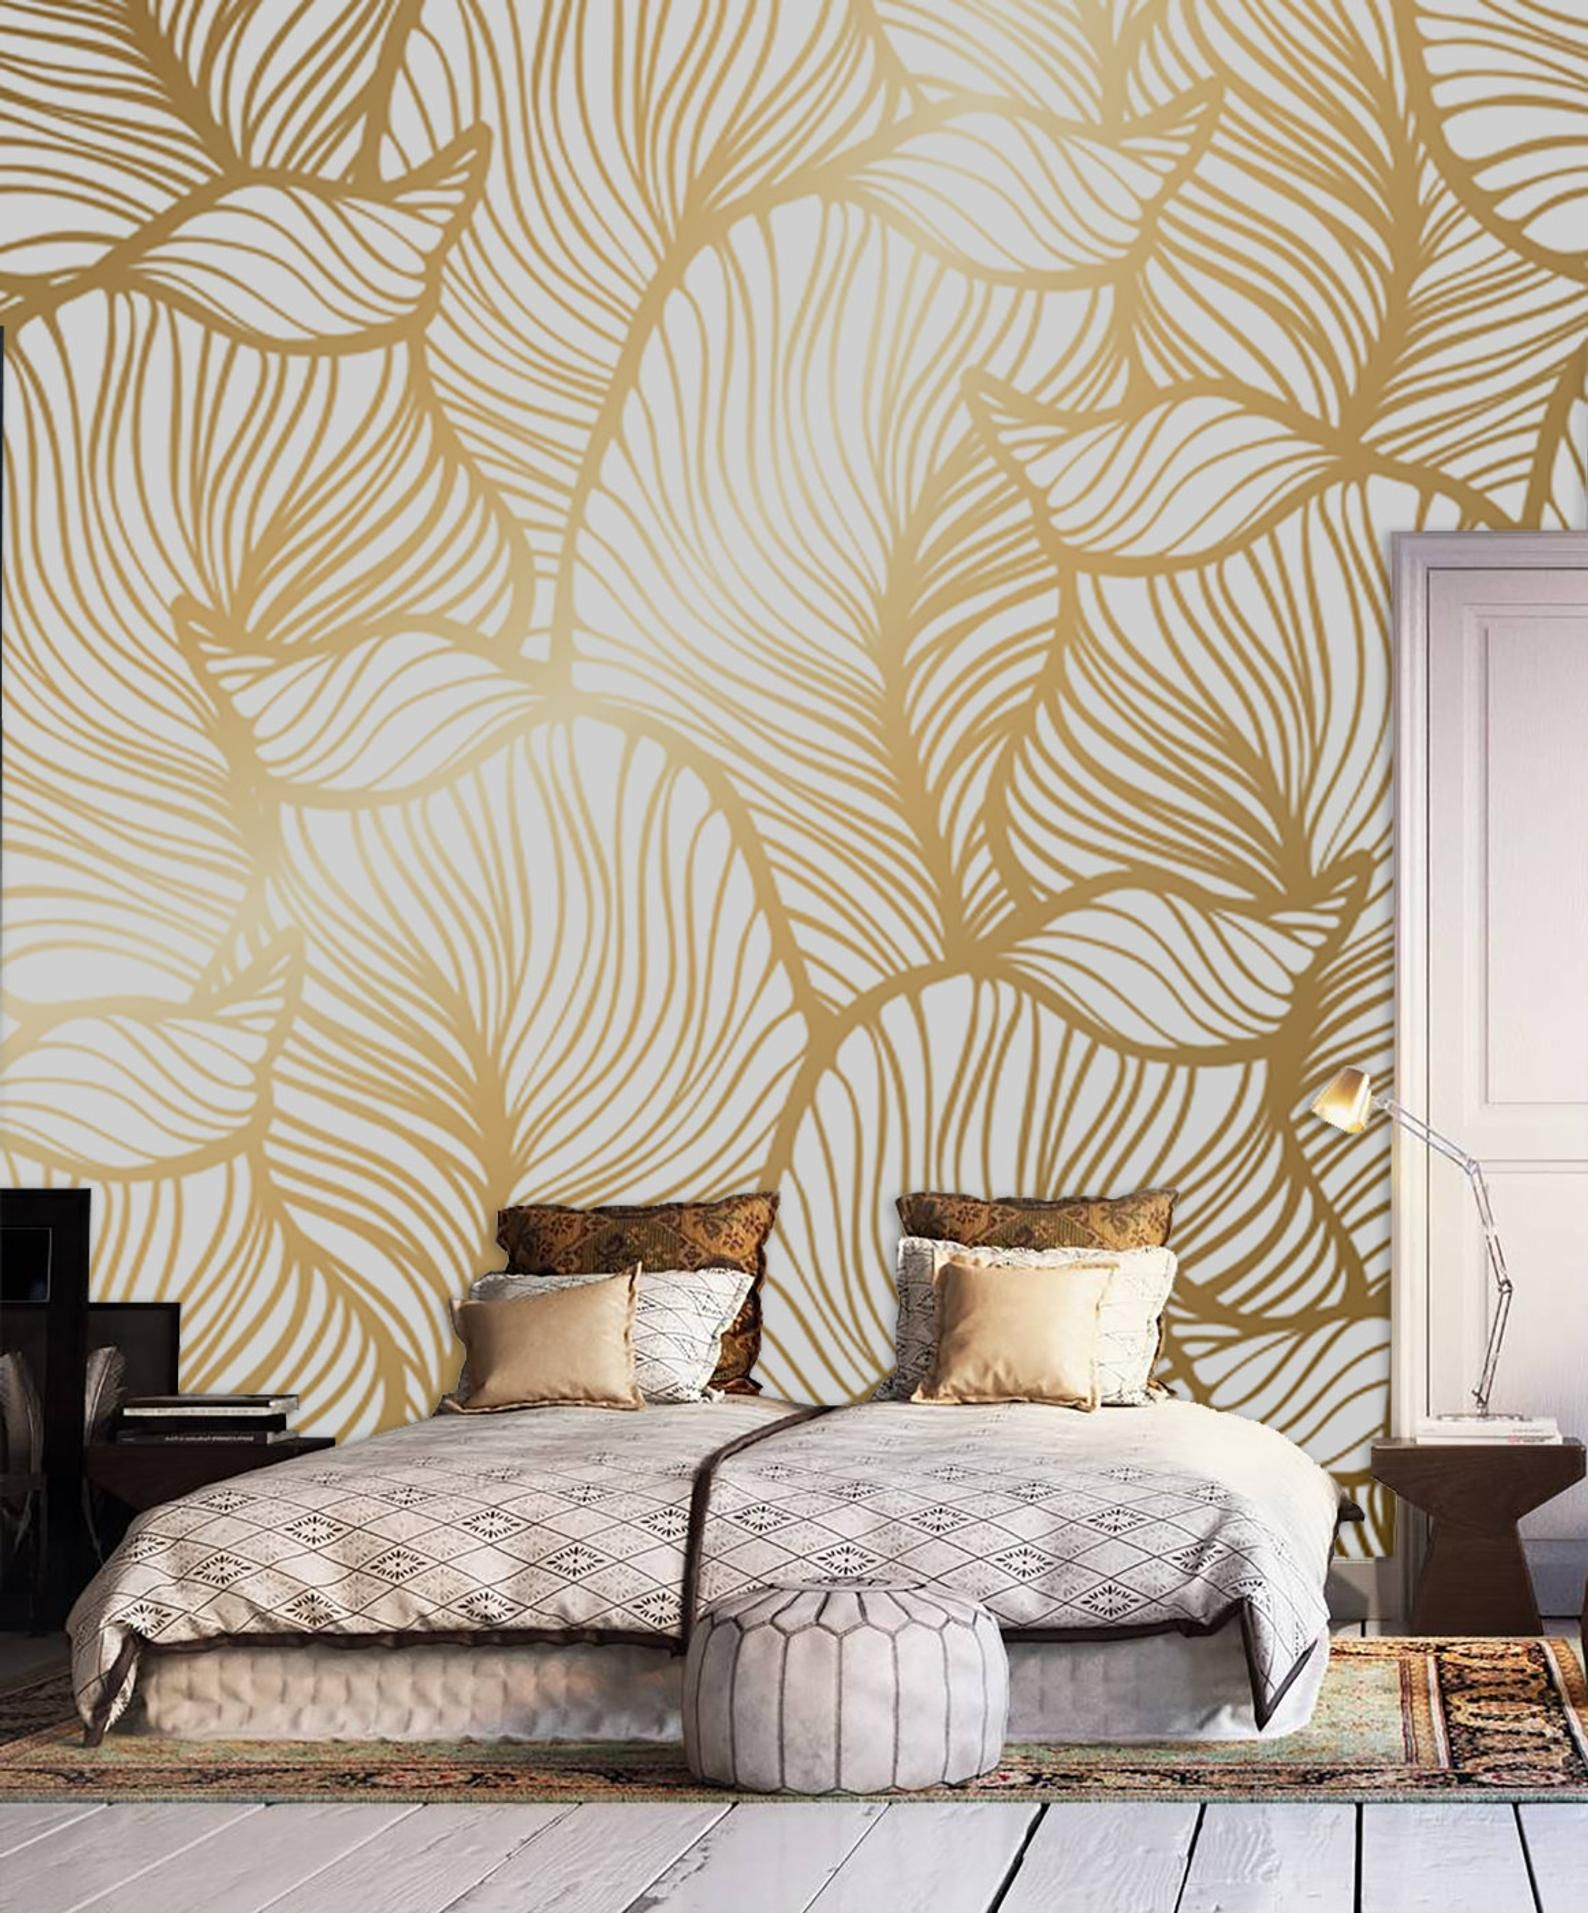 3D Chinese style, Smudge color, Golden material Wallpaper